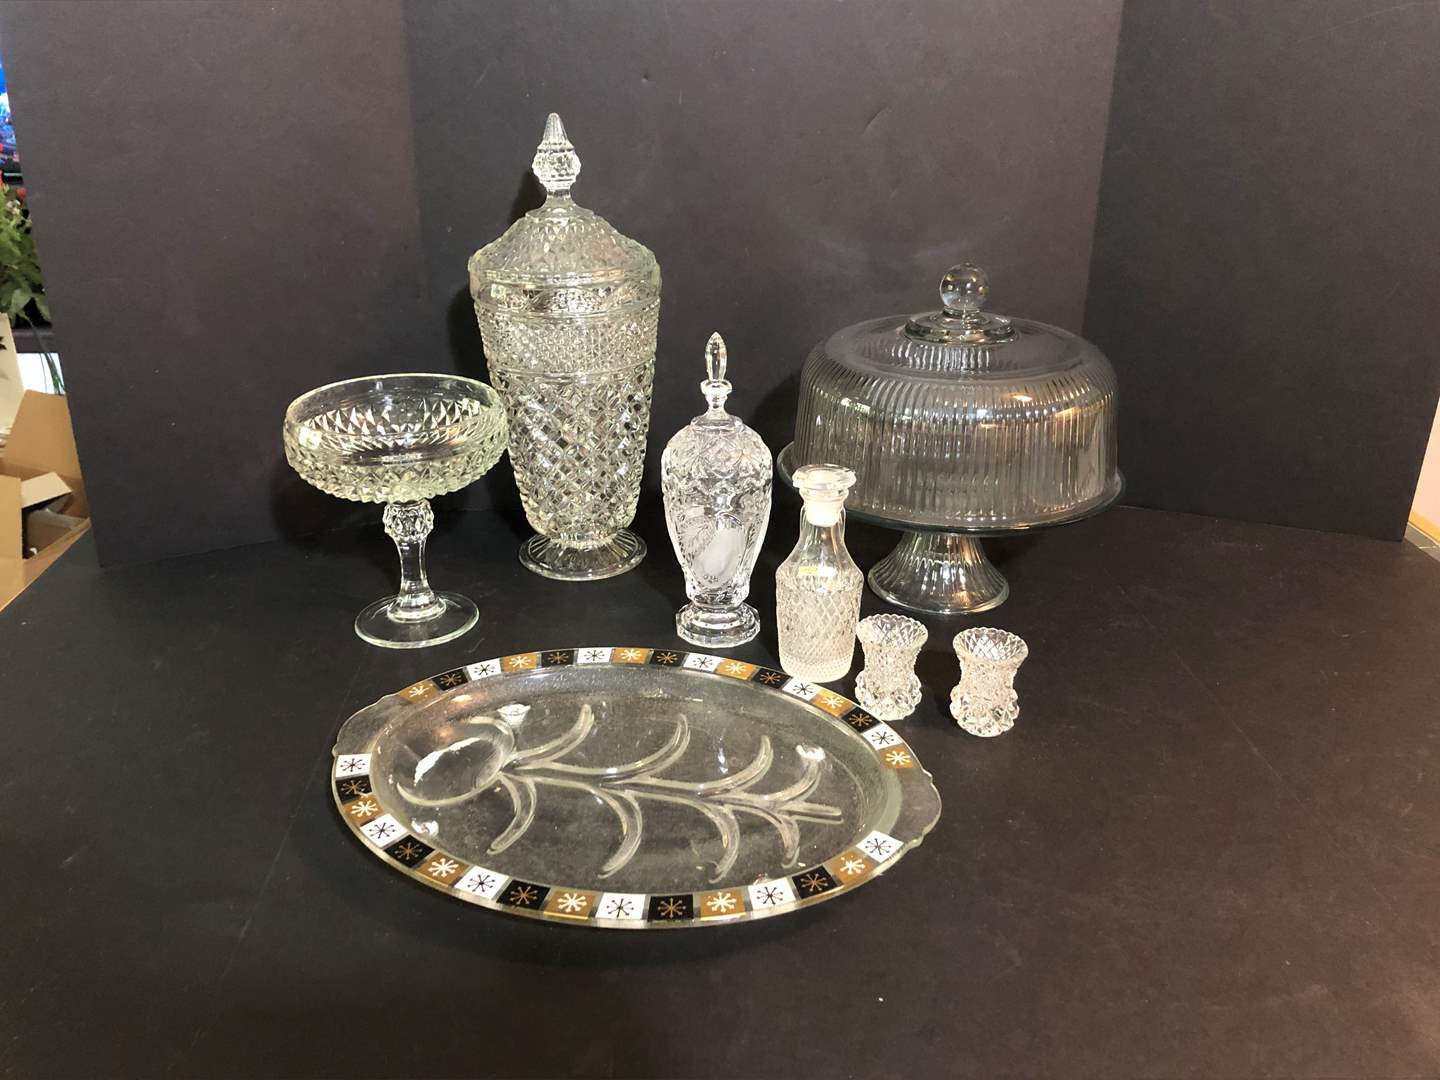 Lot # 68 - Awesome Glass Cake Stand & More Crystal Items (main image)